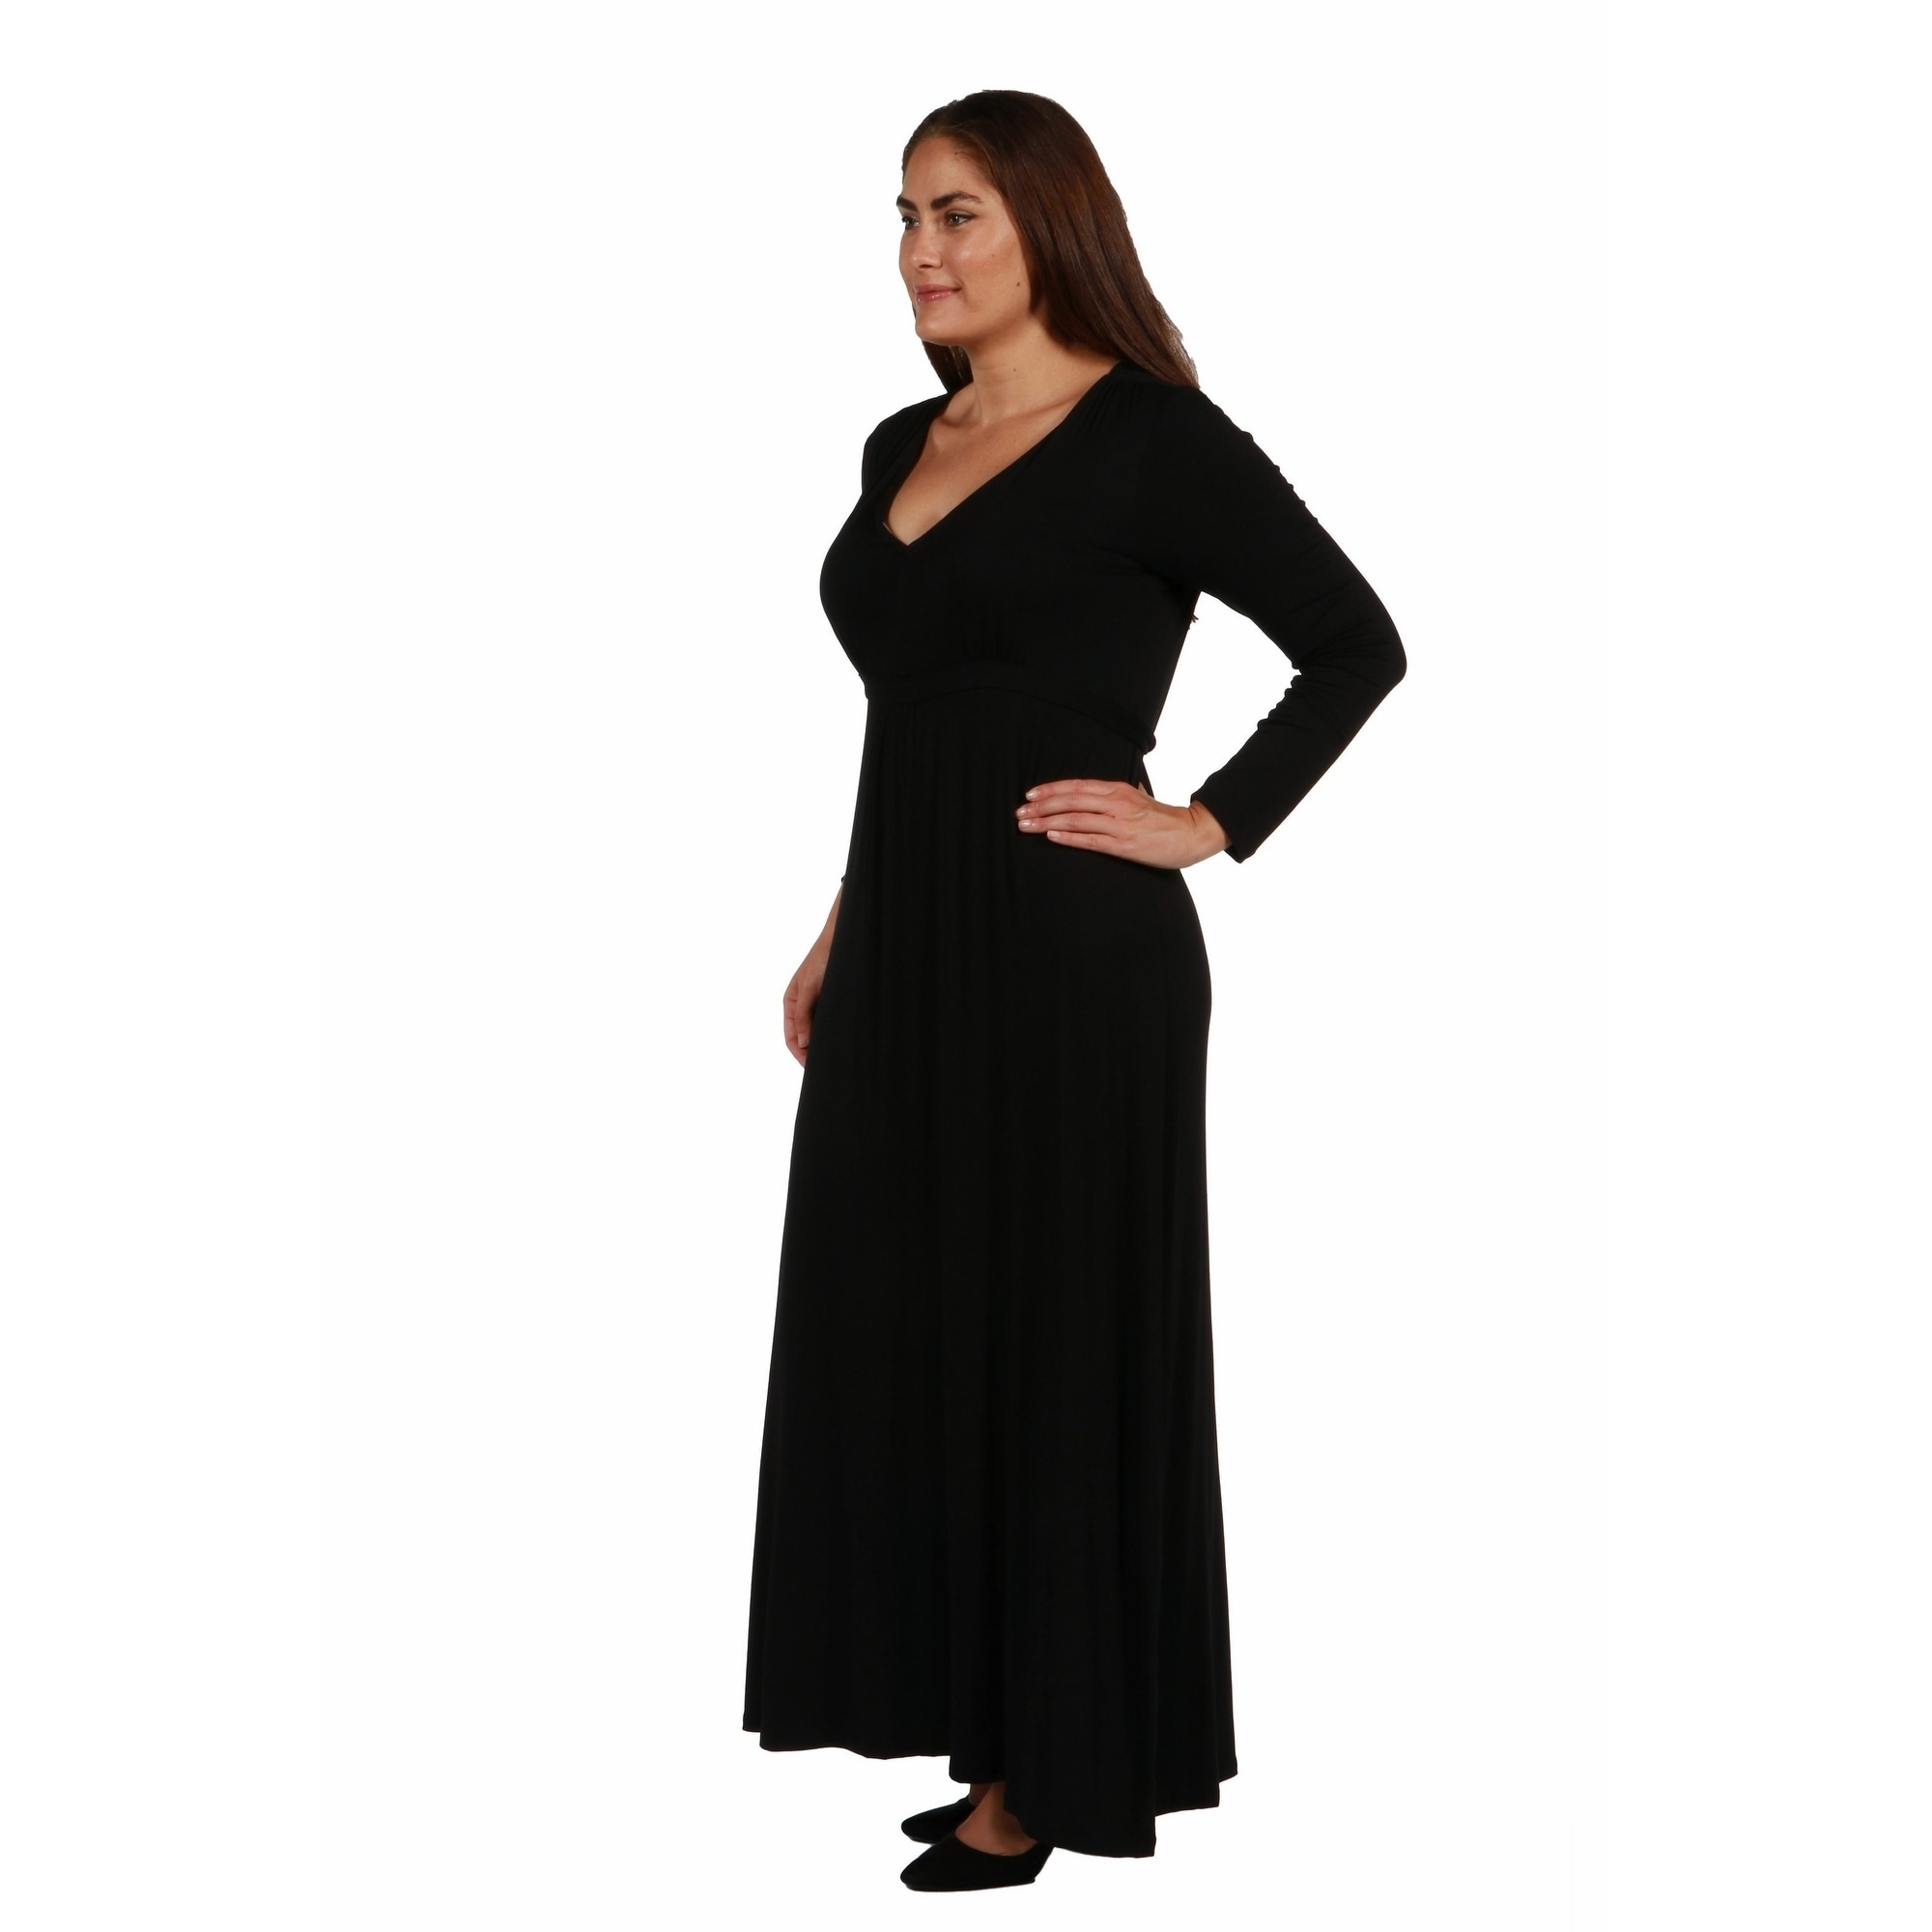 2b5fdefb1ef2 Cool Plus Size Maxi Dresses - Barrier Surveillance